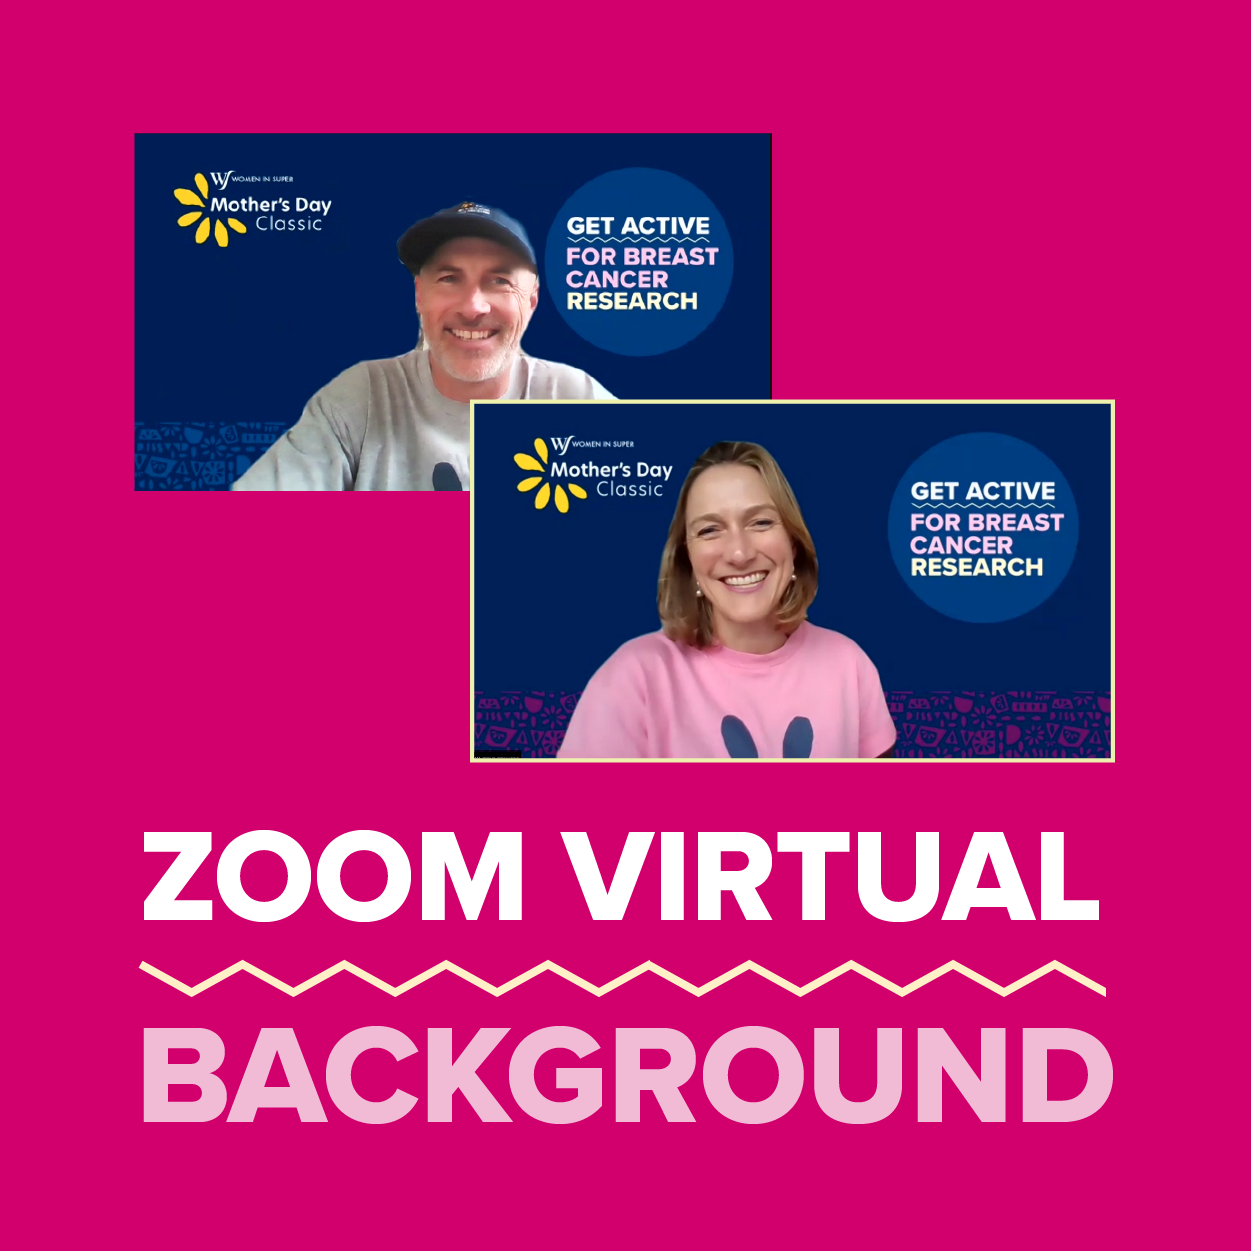 MDC Zoom Virtual Backgrounds